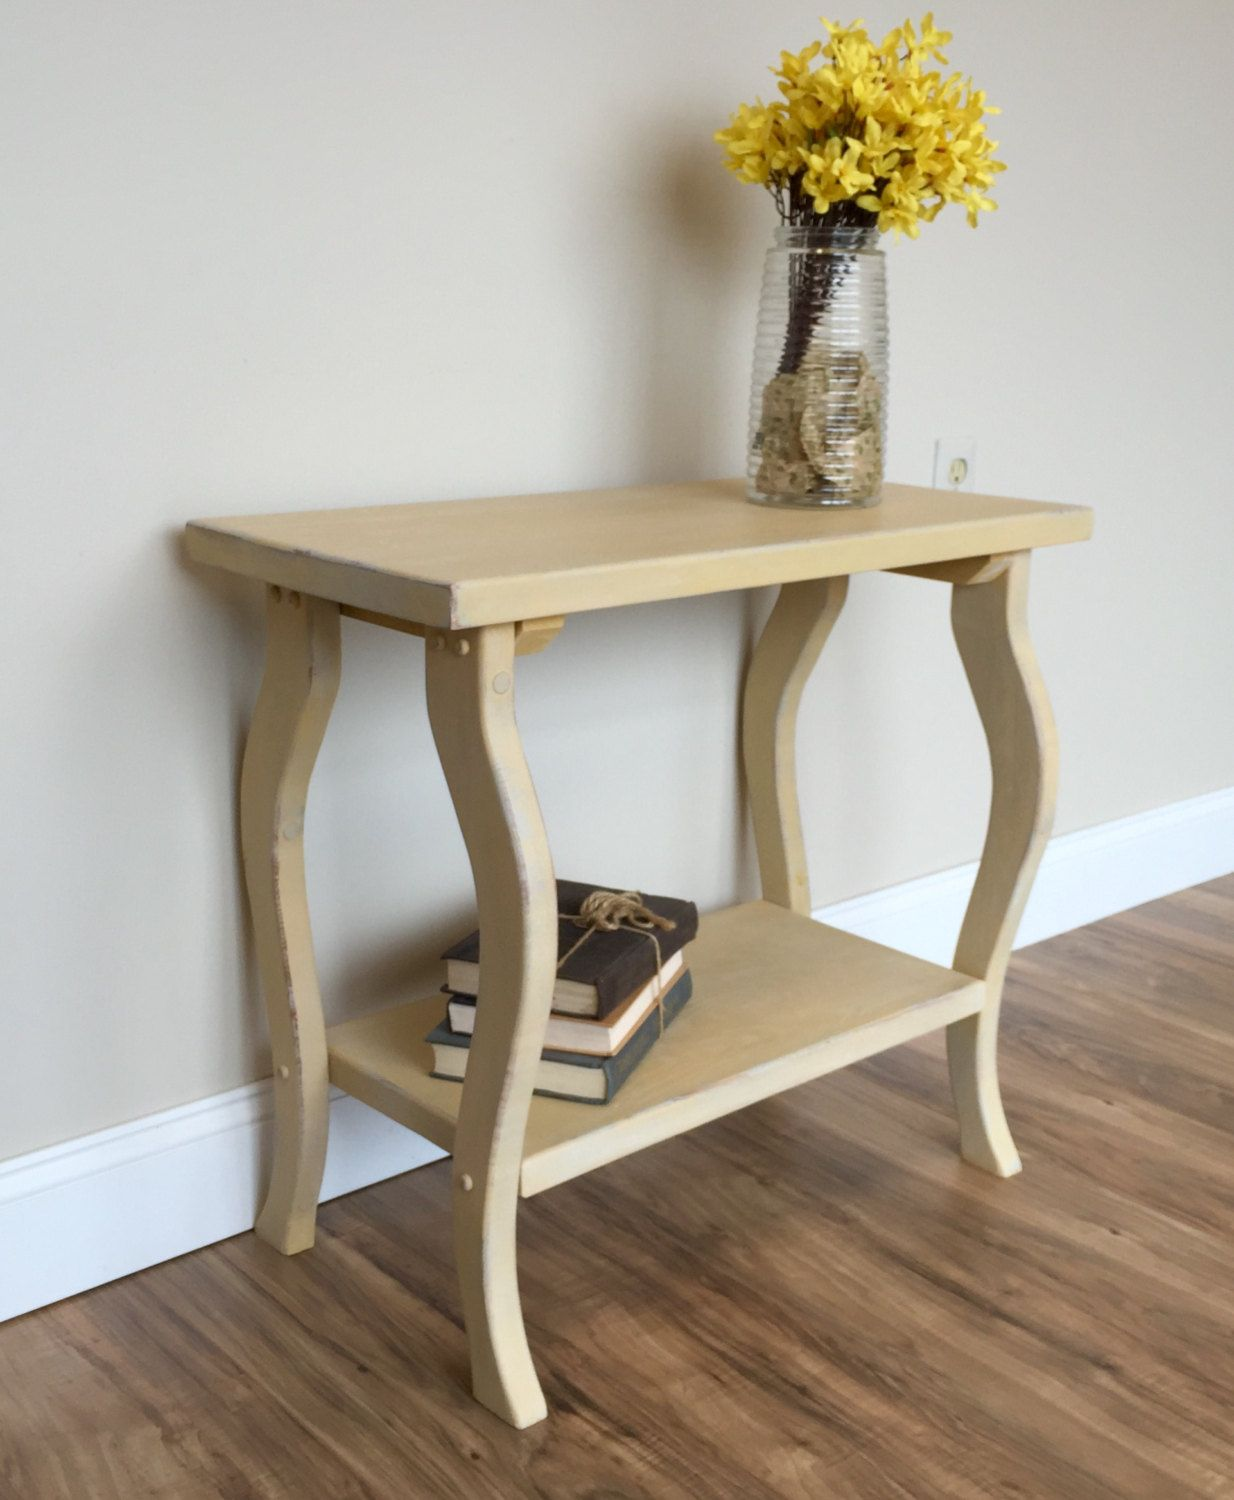 alluring small accent table decor farmhouse tiffany lights ideas tables hallway bathroom shades lighting tiny gold lamp target and lamps for design living contemporary mini